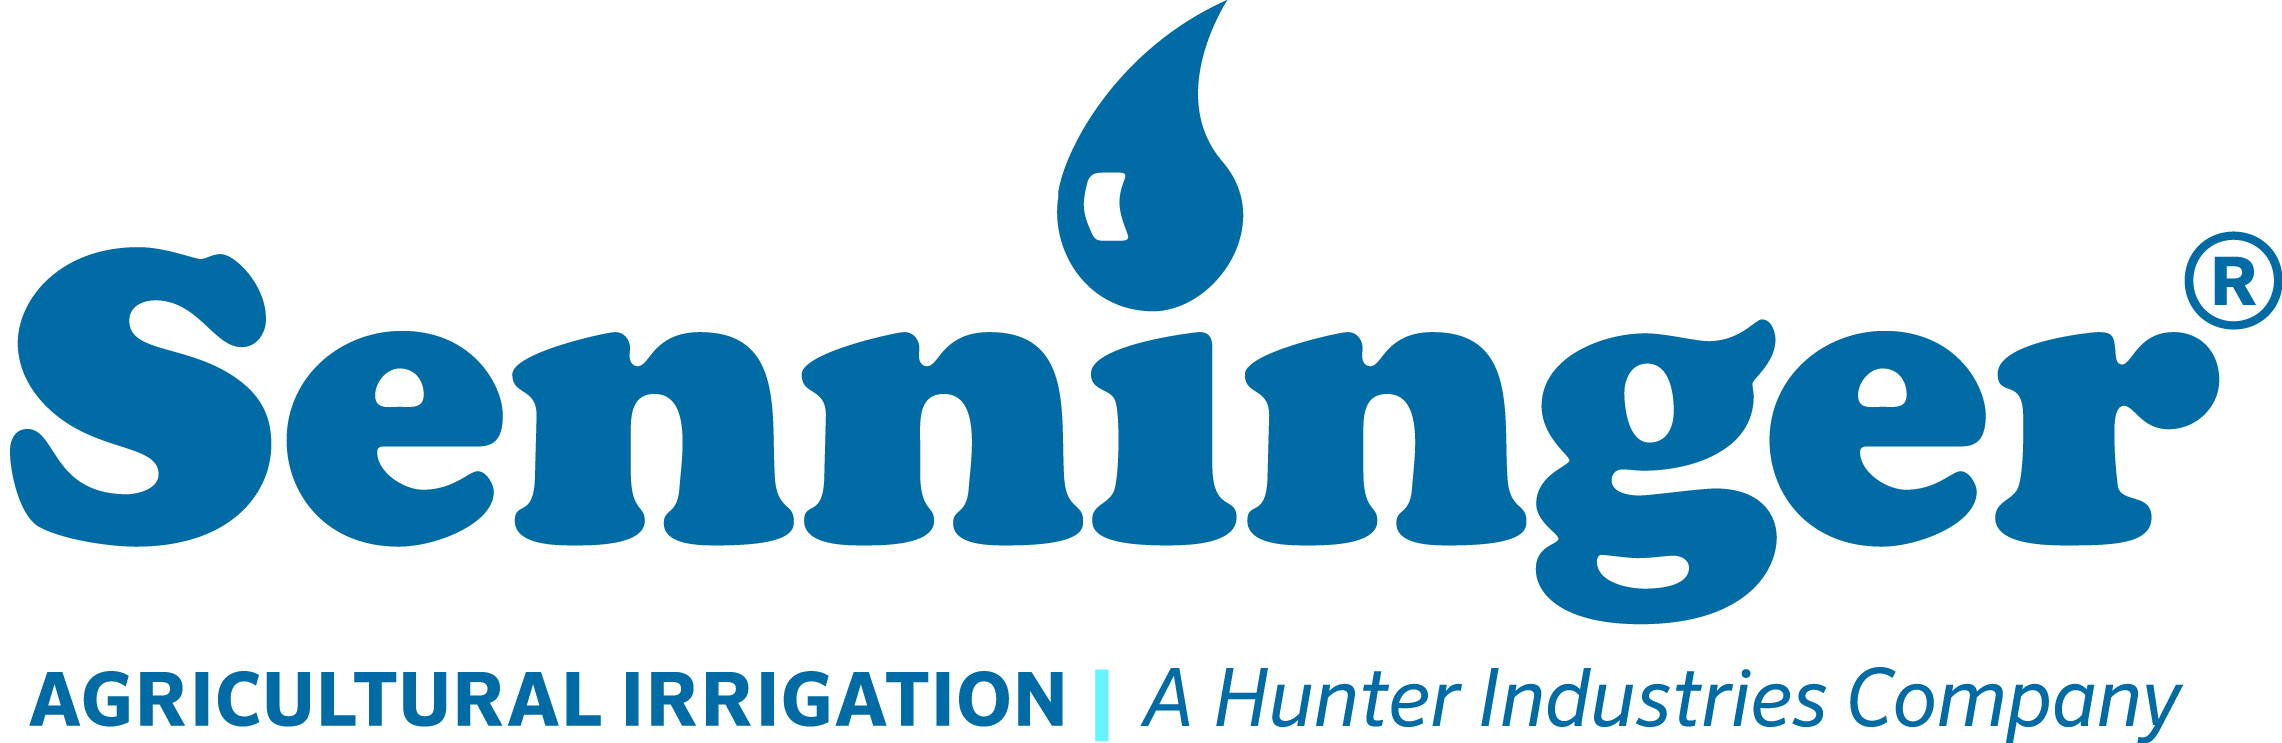 SENNINGER IRRIGATION